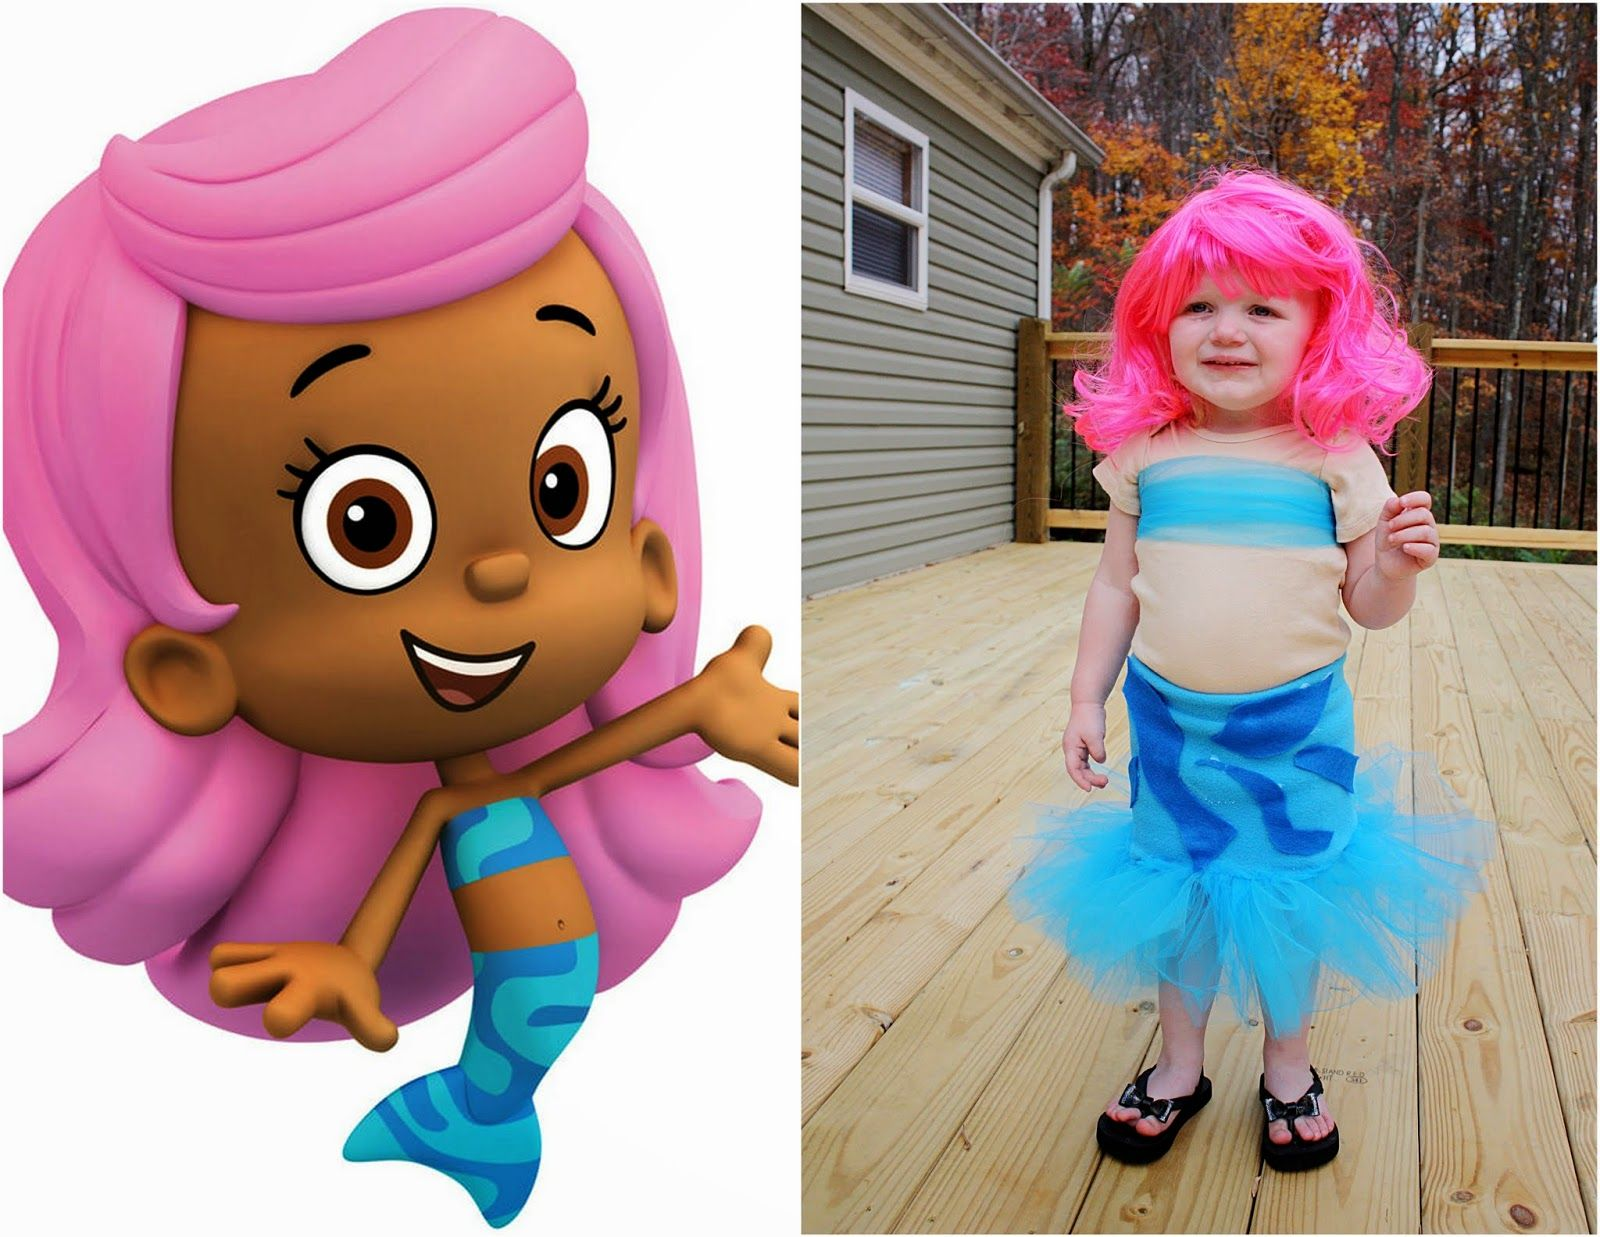 diy bubble guppies molly costume life on a gravel road from life